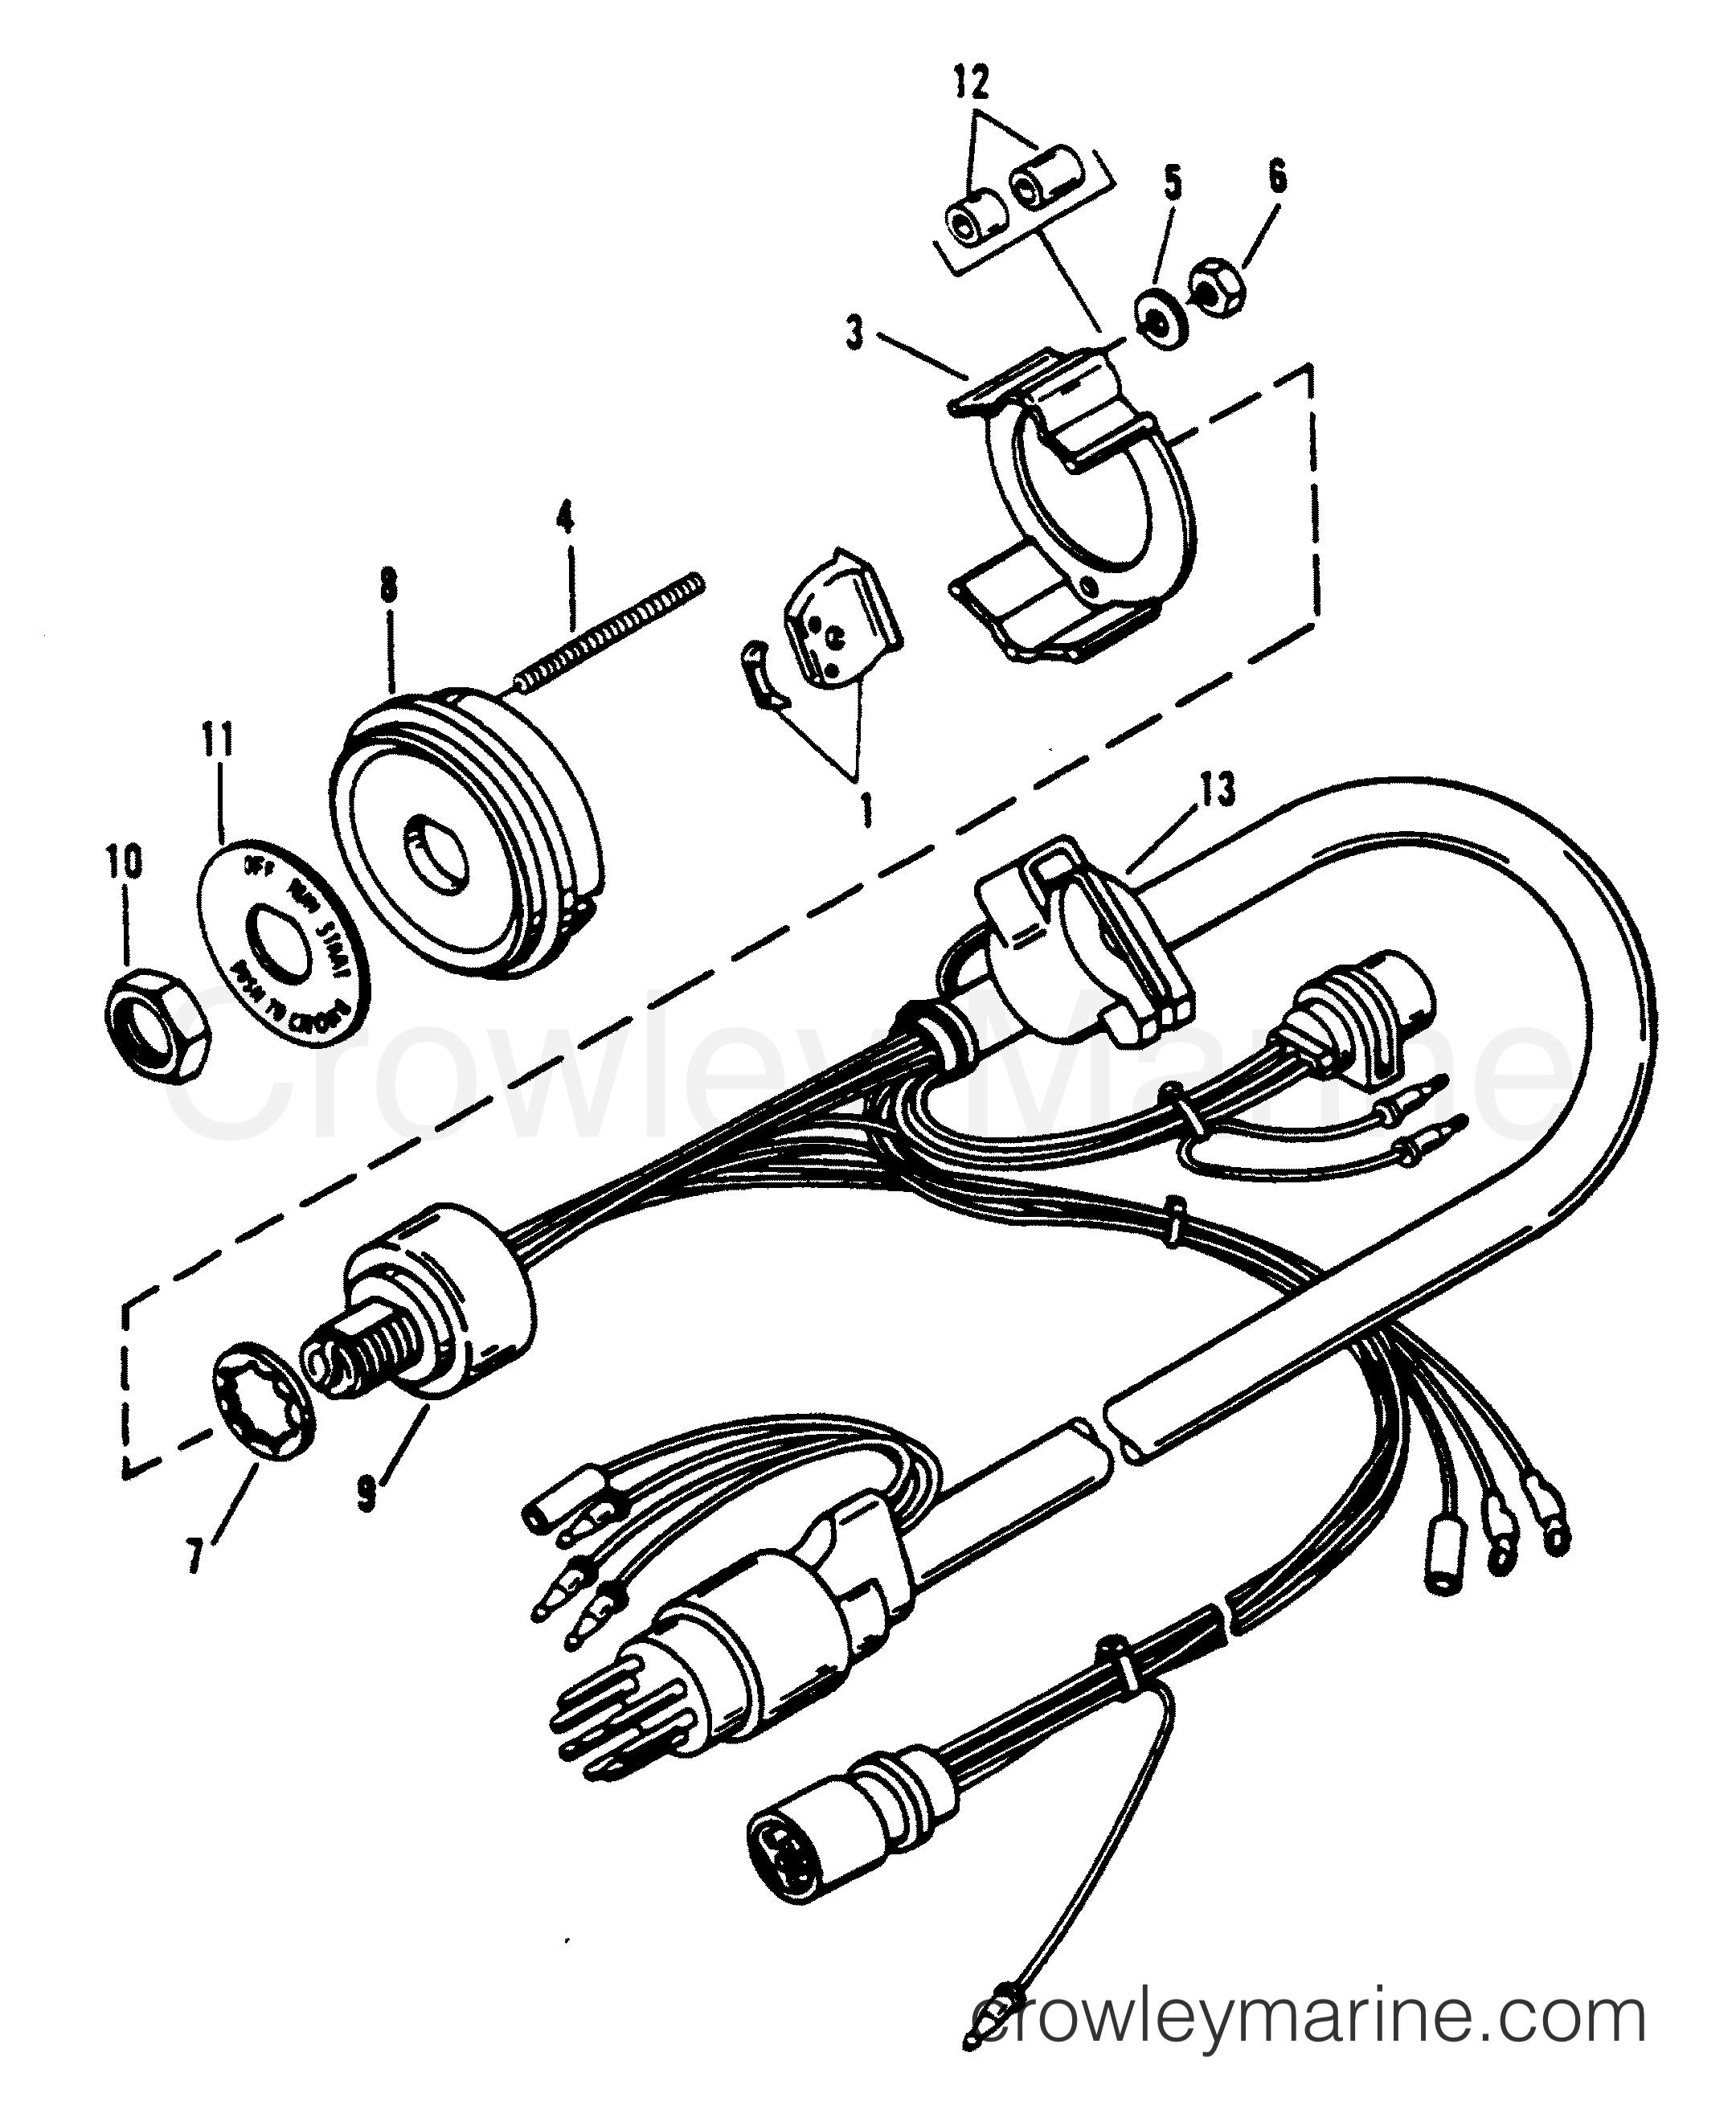 Key Switch Assembly